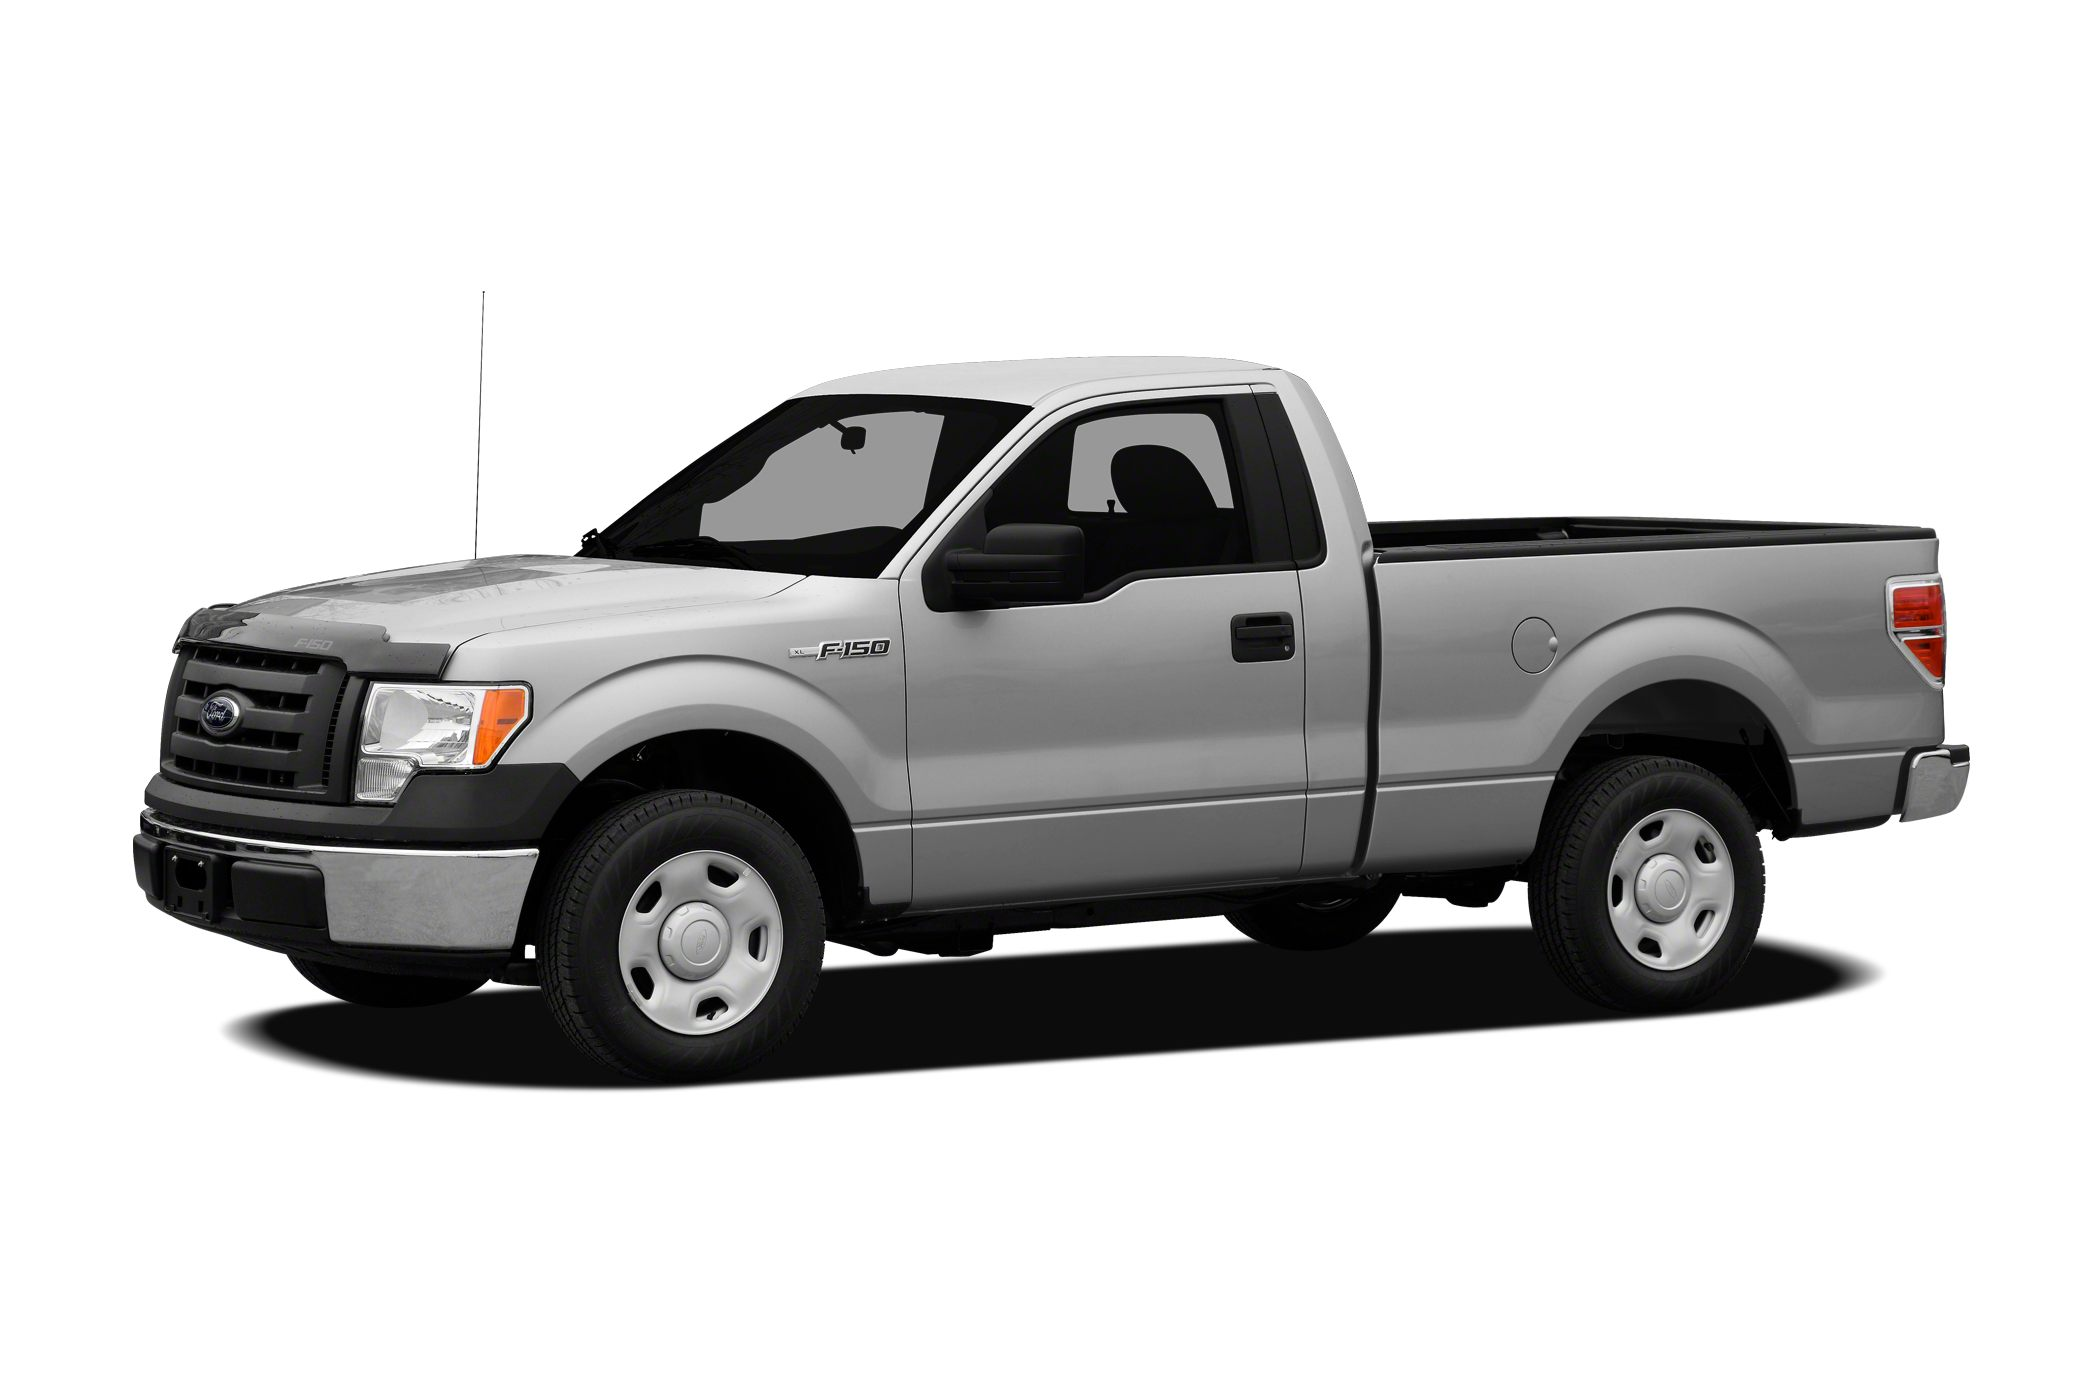 2012 Ford F150 XLT Crew Cab Pickup for sale in Malone for $35,450 with 20,350 miles.